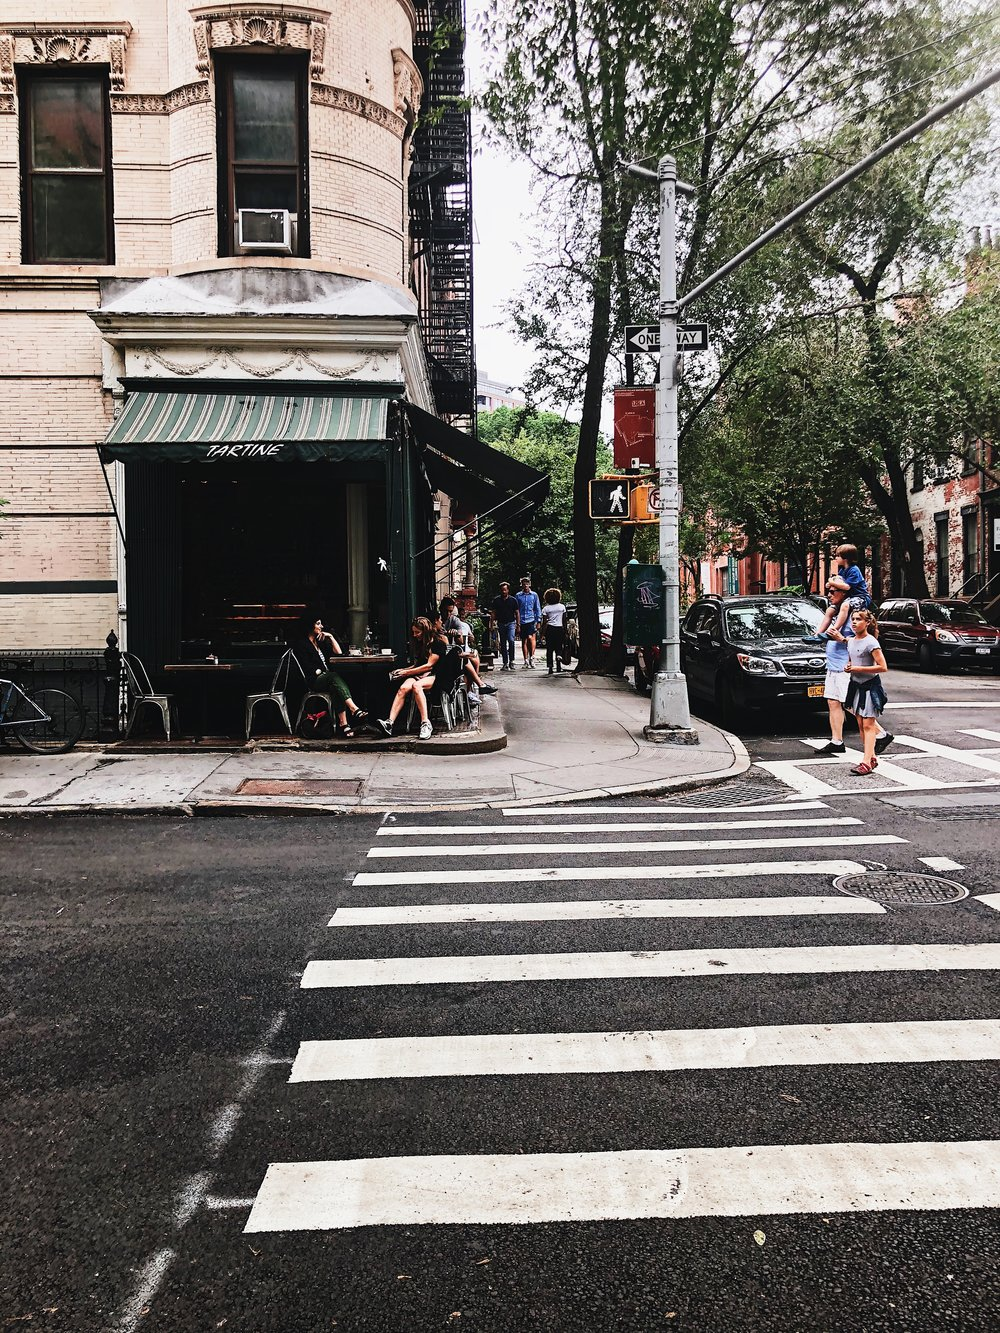 'Hygge':a quality of cosiness and comfortable conviviality that engenders a feeling of contentment or well-being - When I think of hyggein New York City, I think of Greenwich Village. In this very area you'll also find my favorite street side café: Tartine.